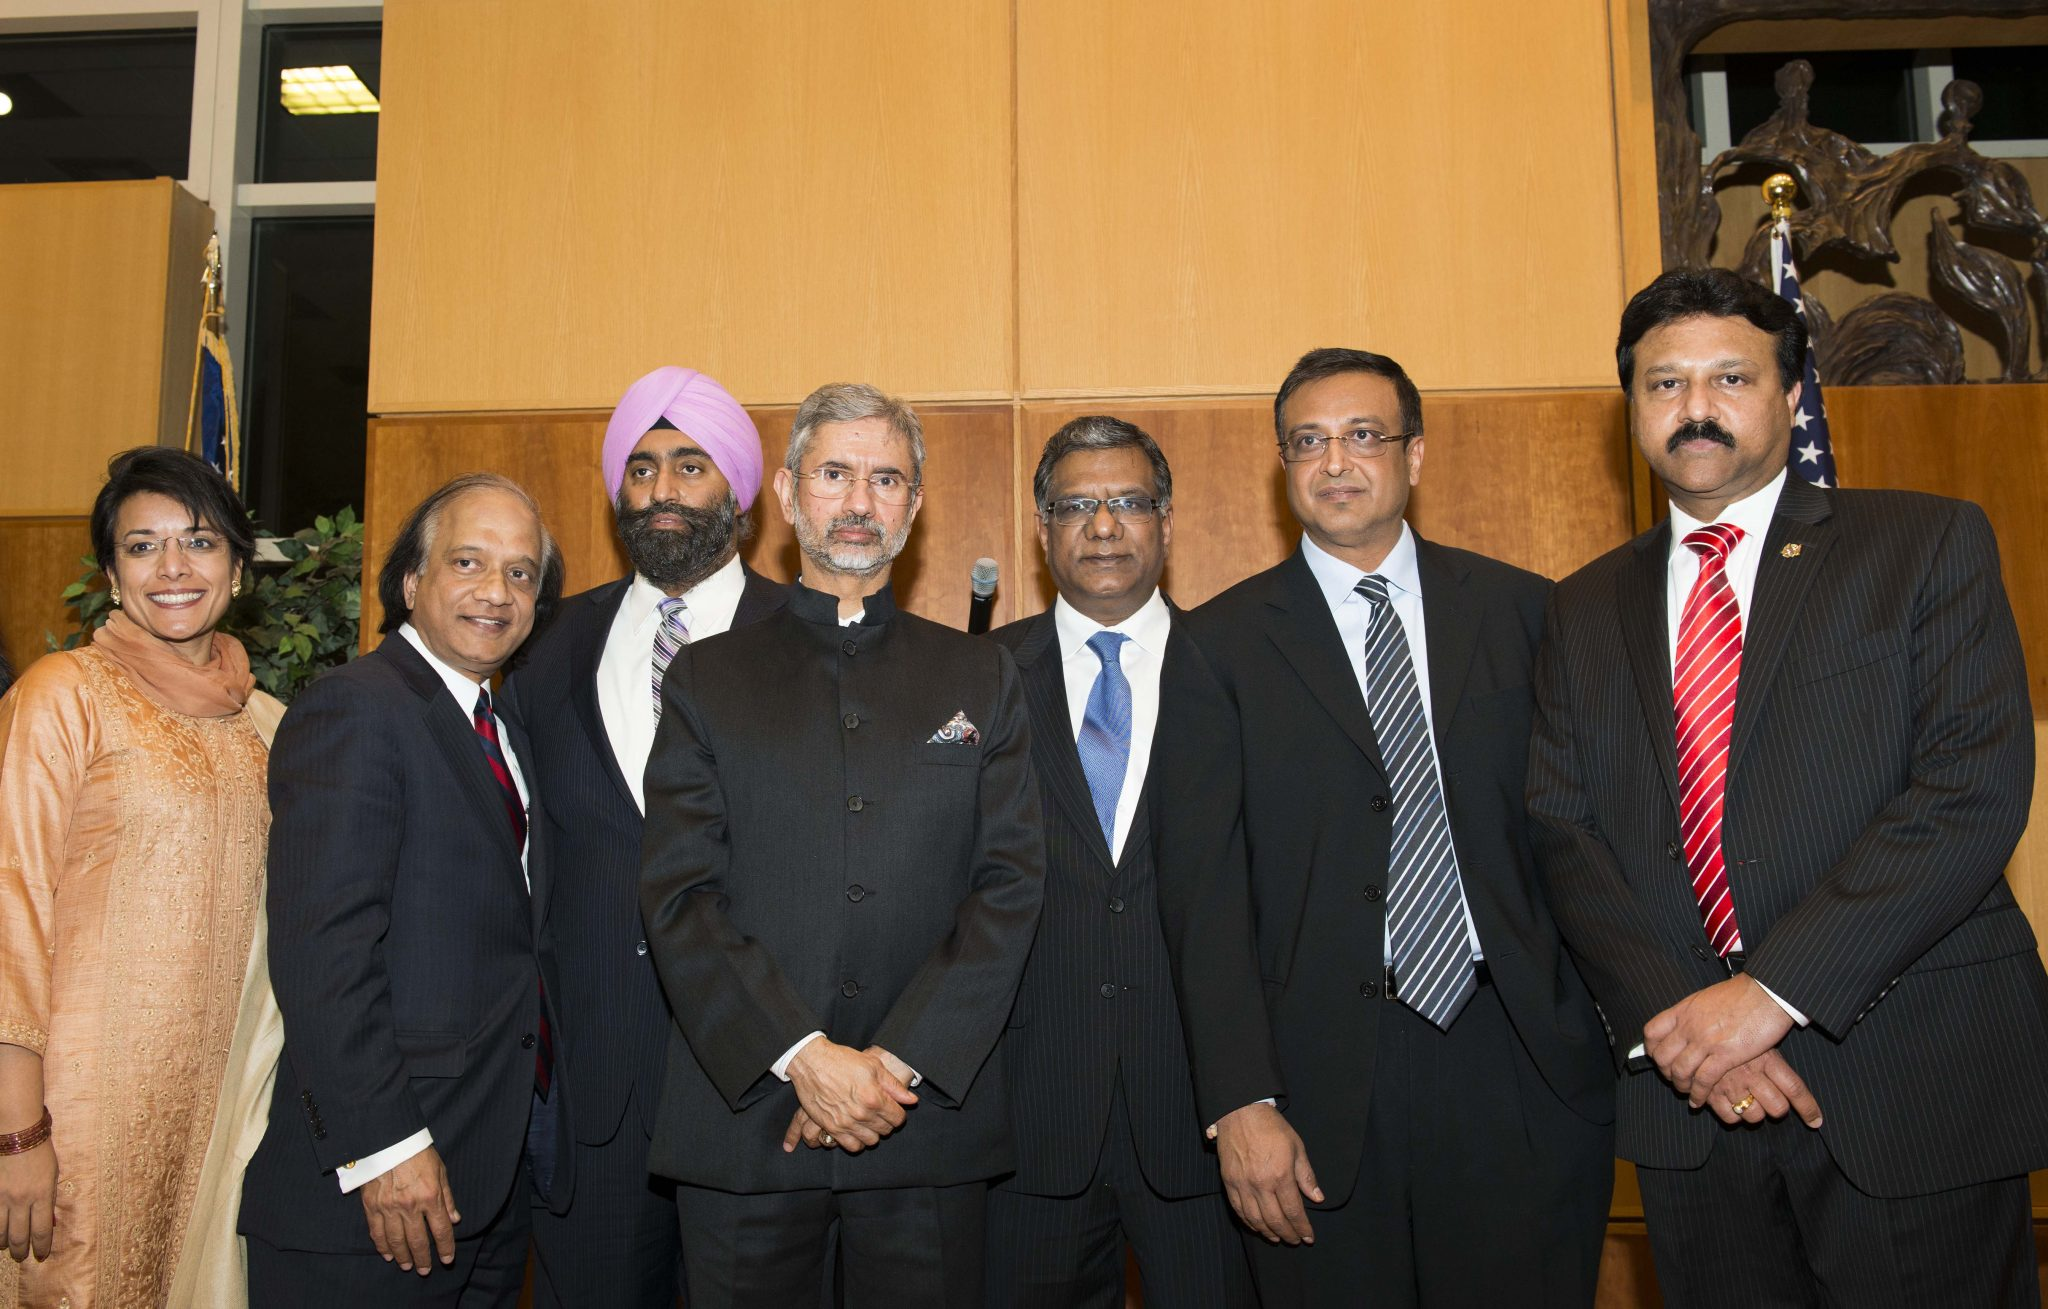 Ambassador S. Jaishankar (center) poses for picture with Indian American leaders at a reception given in honor of the Indian envoy in Potomac, MD, on Saturday.